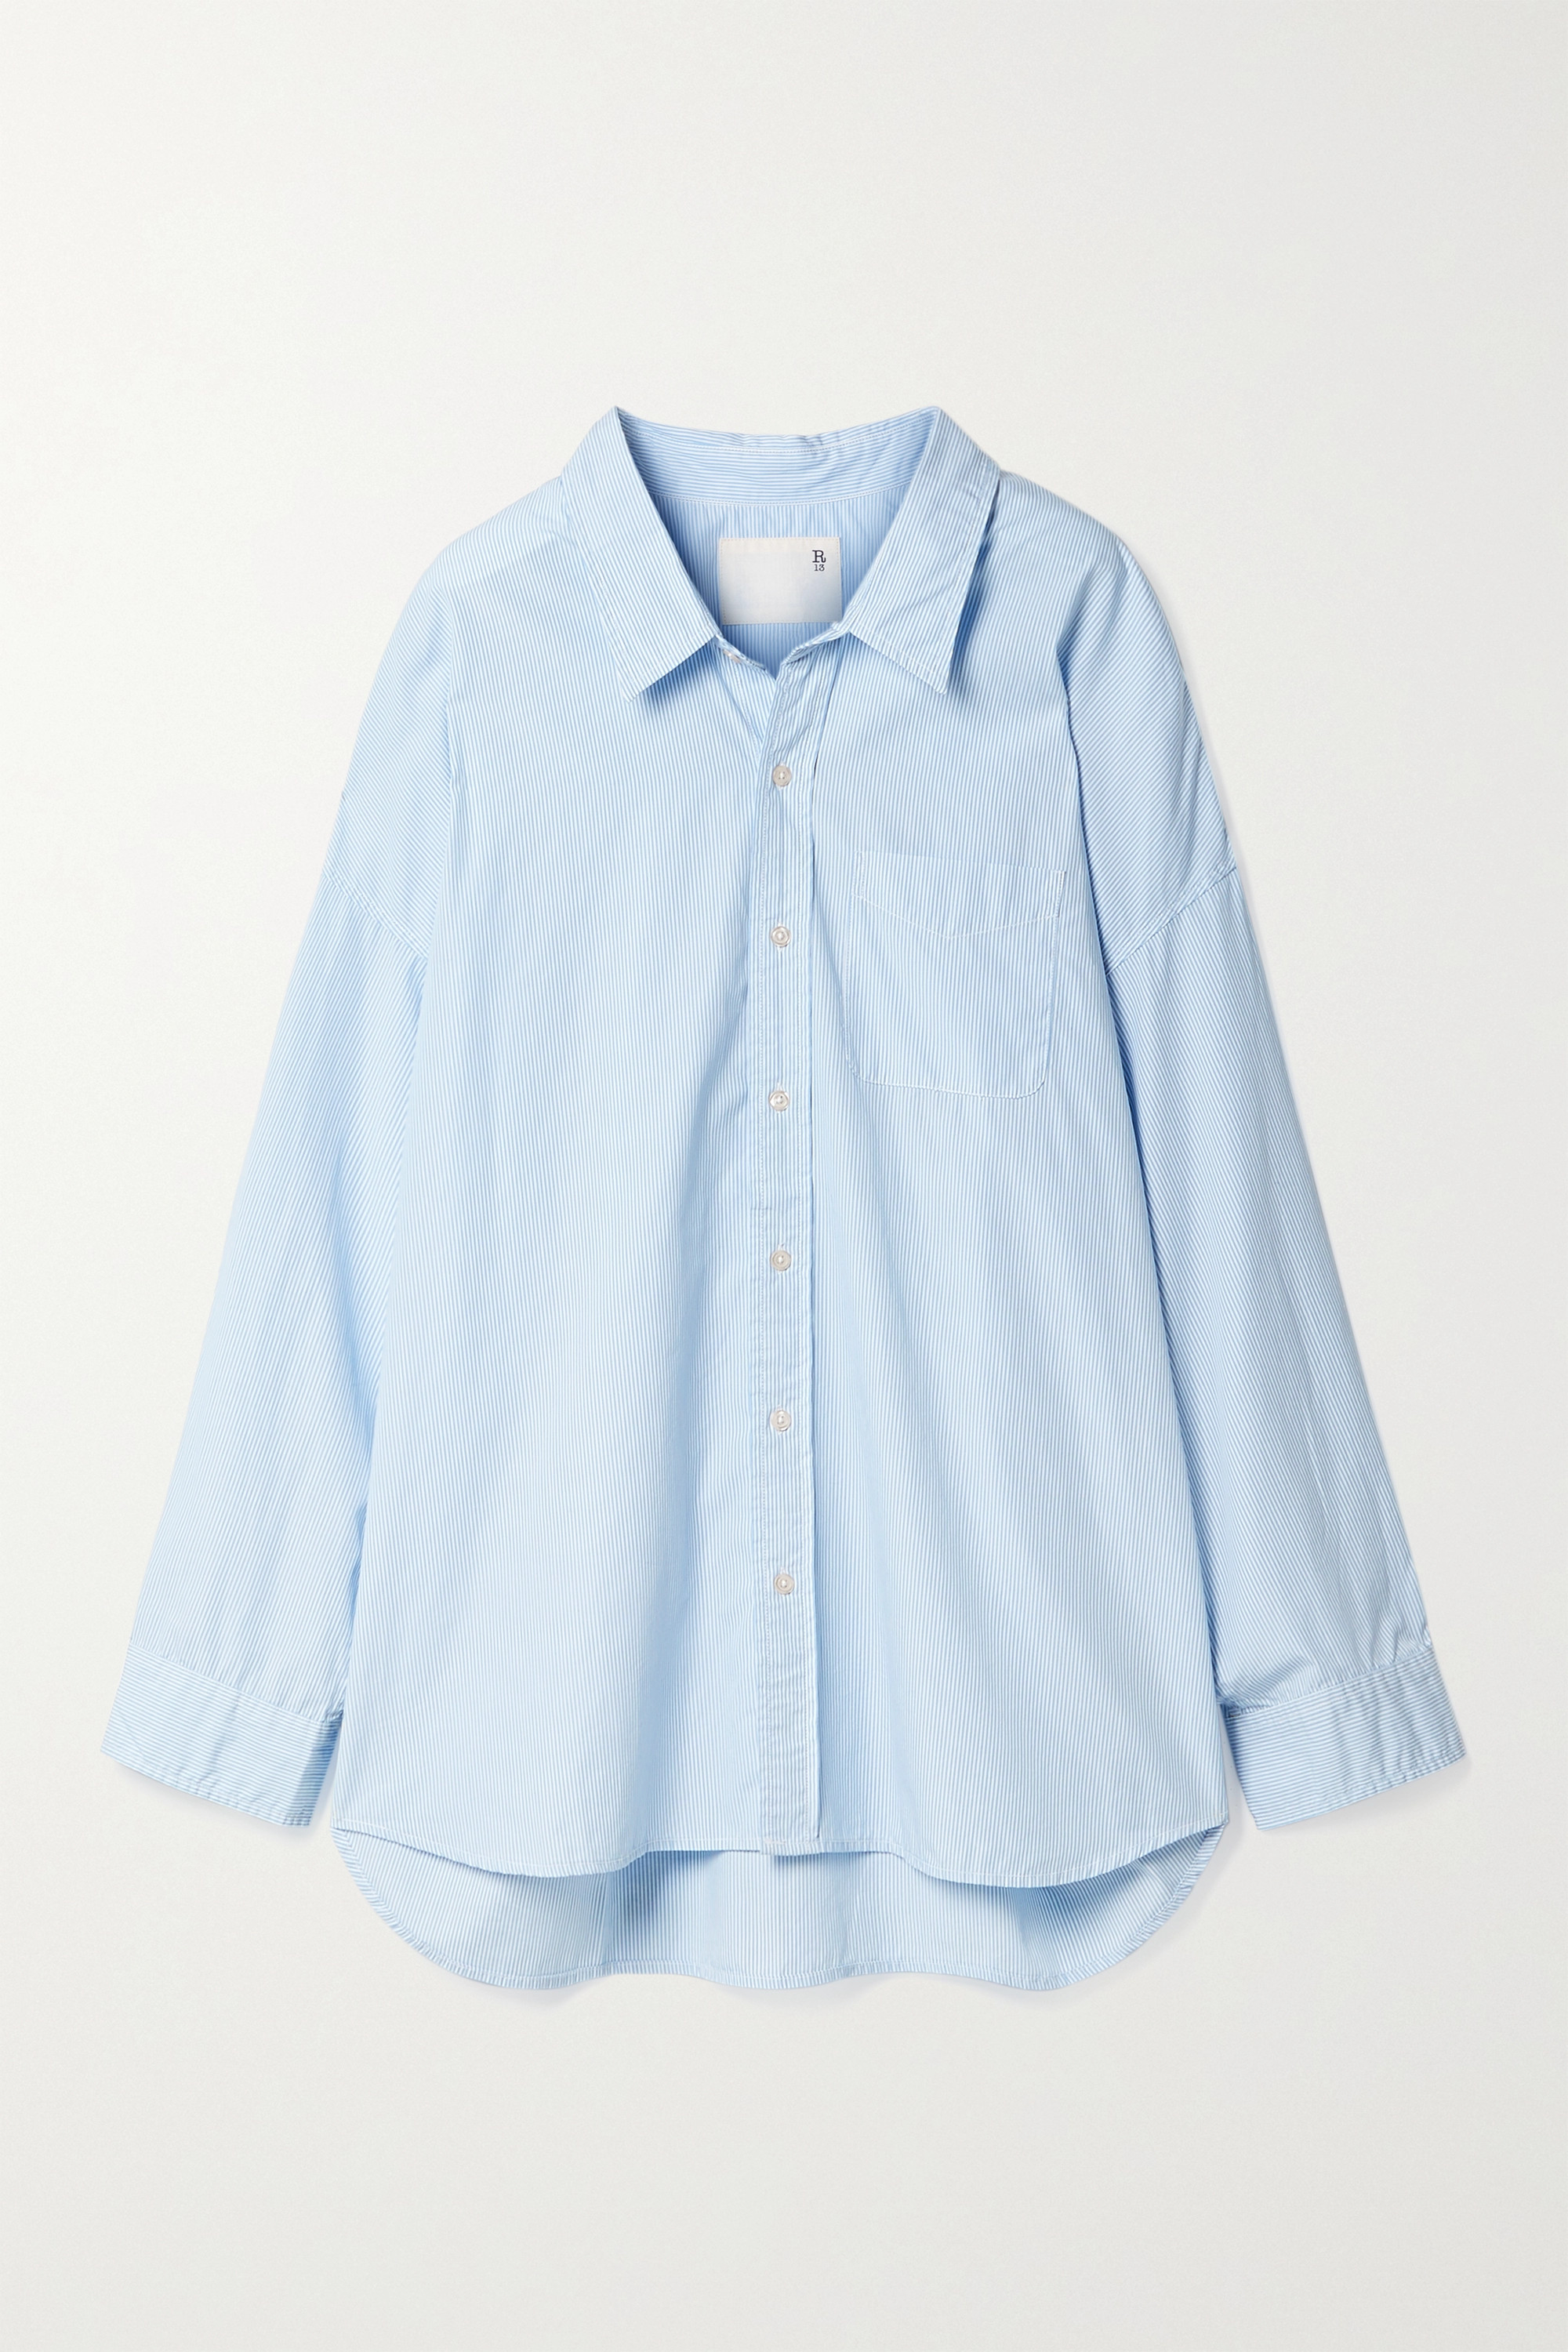 R13 Oversized pinstriped cotton Oxford shirt